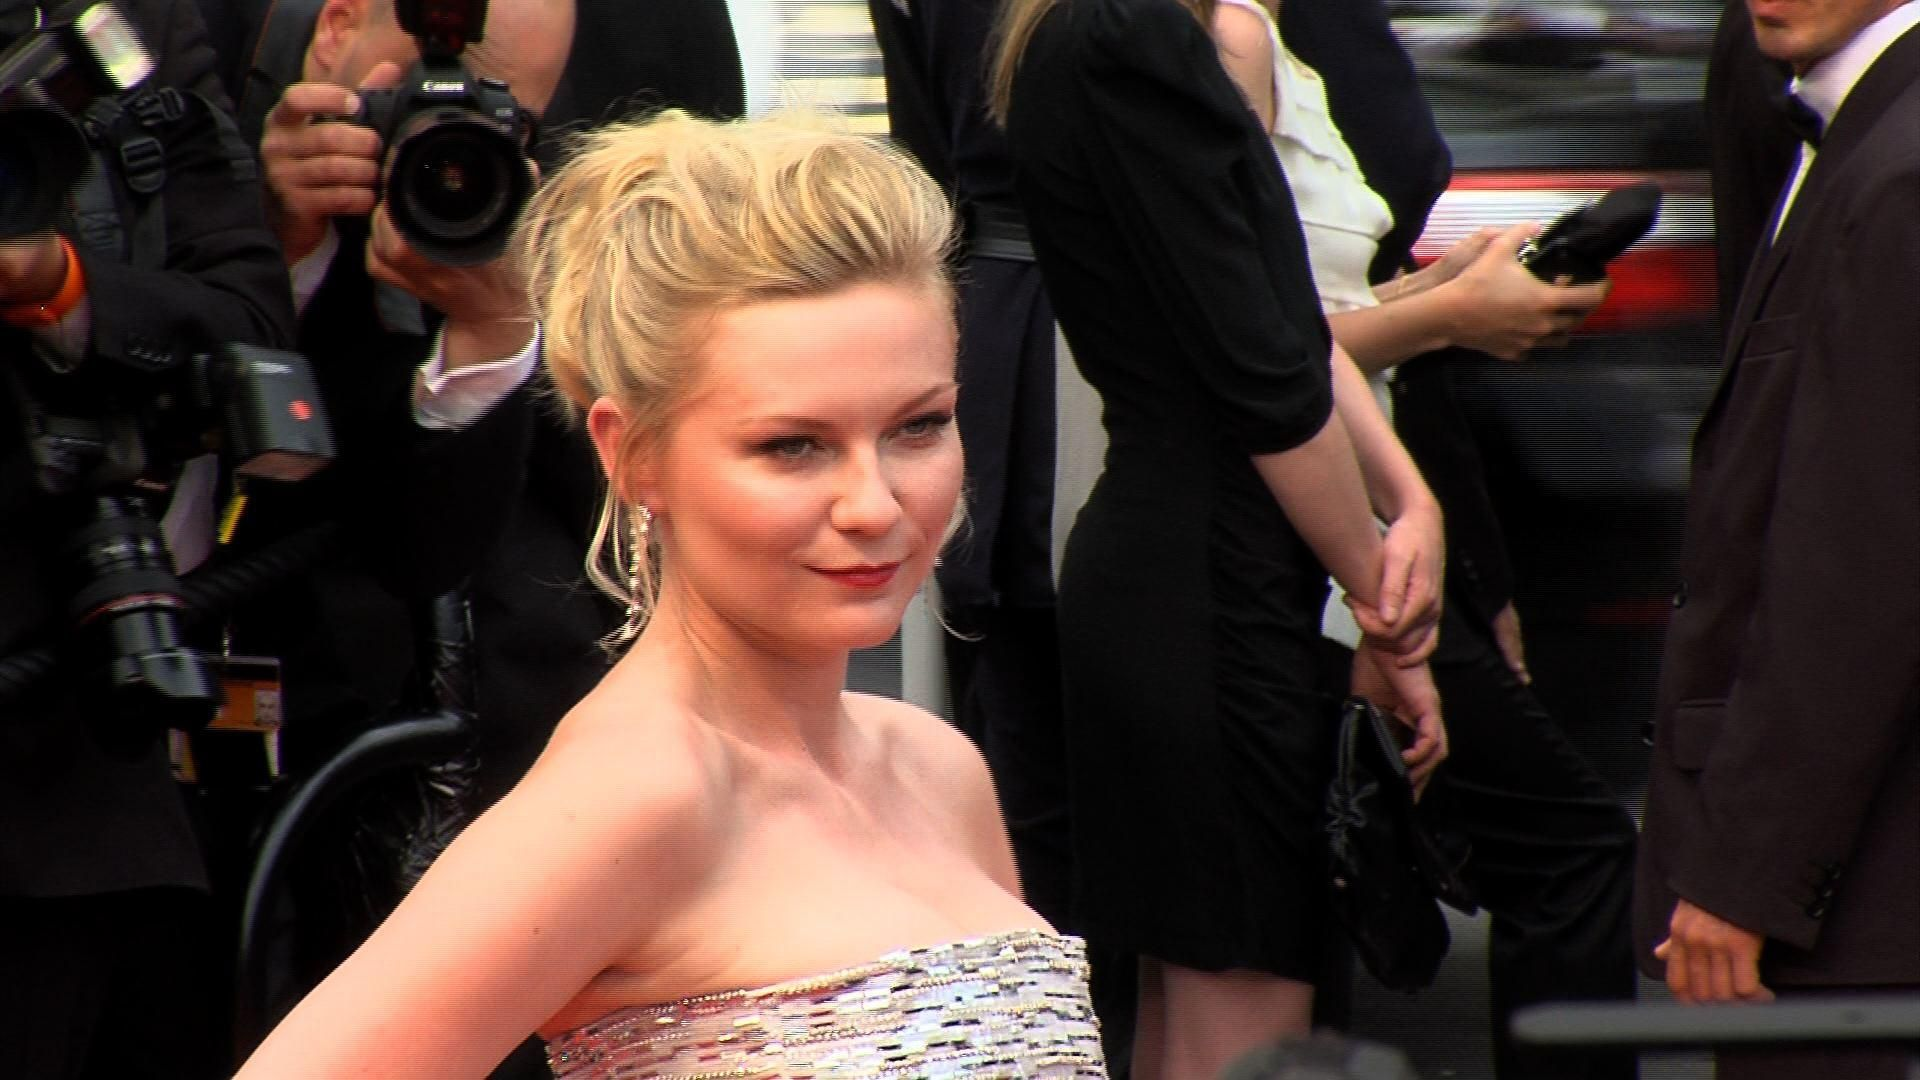 Kirsten Dunst casts Dakota Fanning for her directorial debut!  What do you think about Kirsten Dunst's big step? Give us your reaction!  #KirstenDunst #DakotaFanning #Film #Movies #Celebrities #CelebrityNews #Entertainment